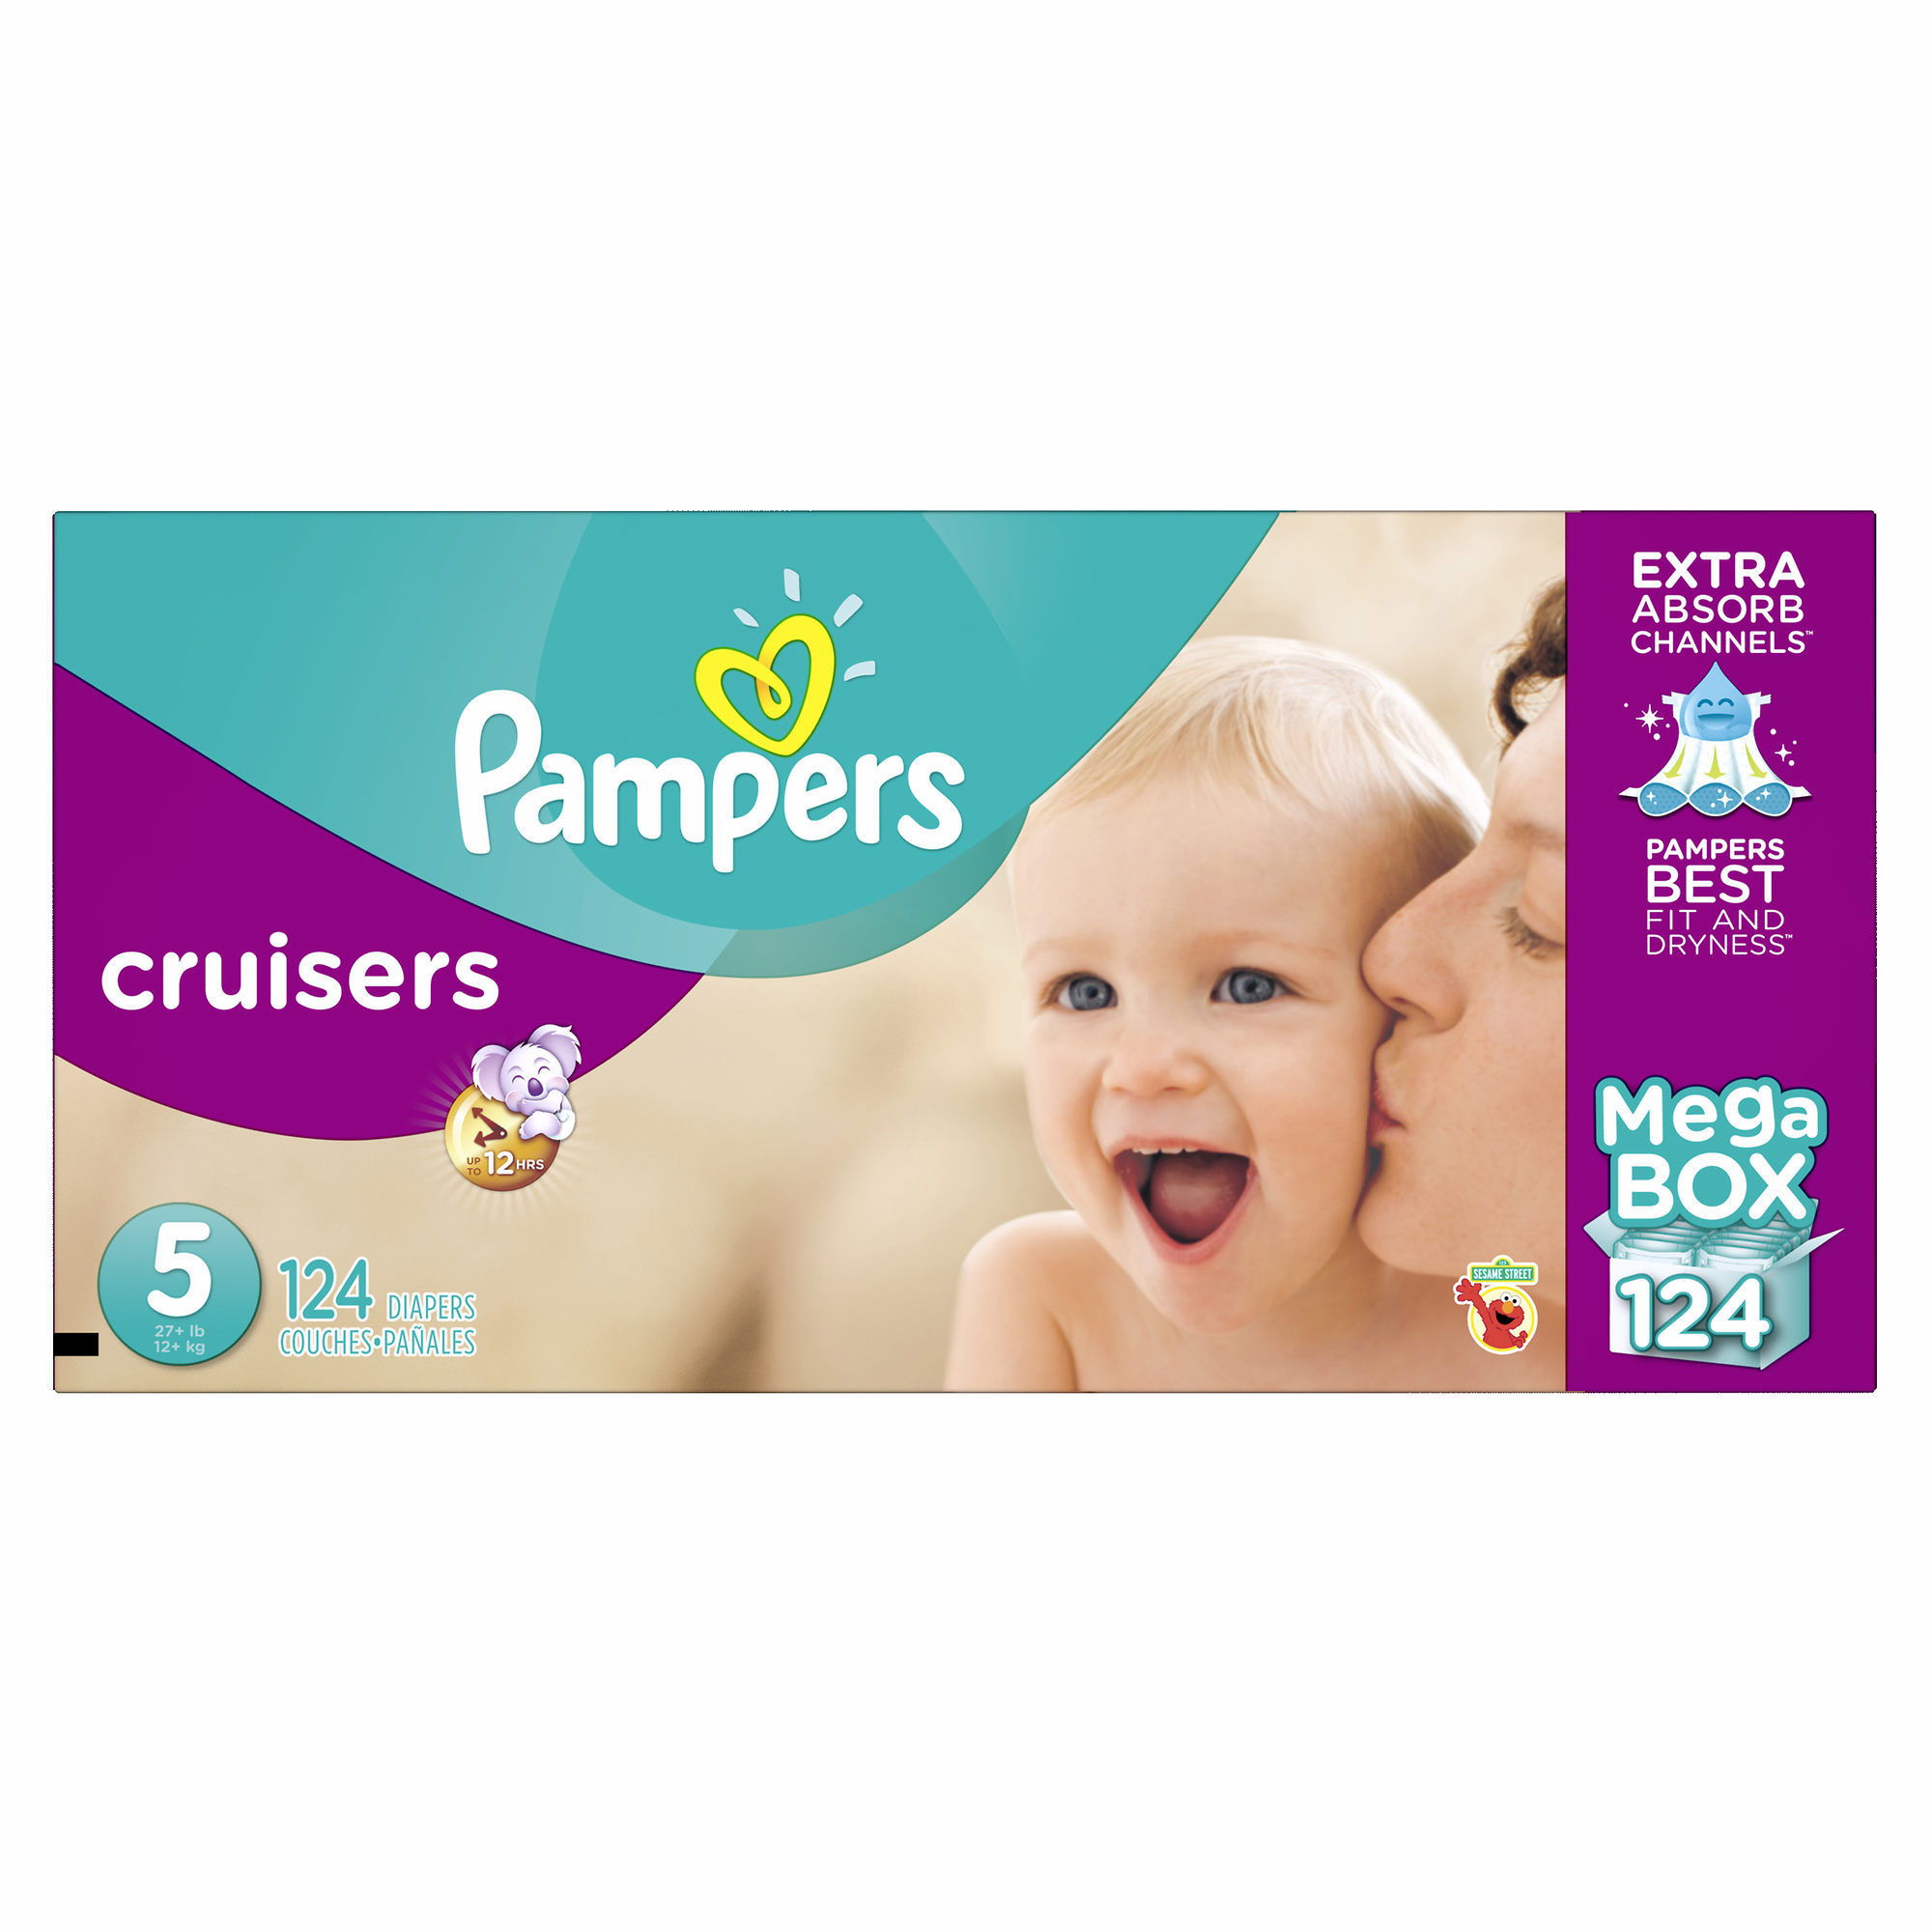 Pampers Cruisers - Size 5 Diapers - One hundred and twenty four pieces - Branded Diapers at a wholesale price - Soft & Comfortable for babies